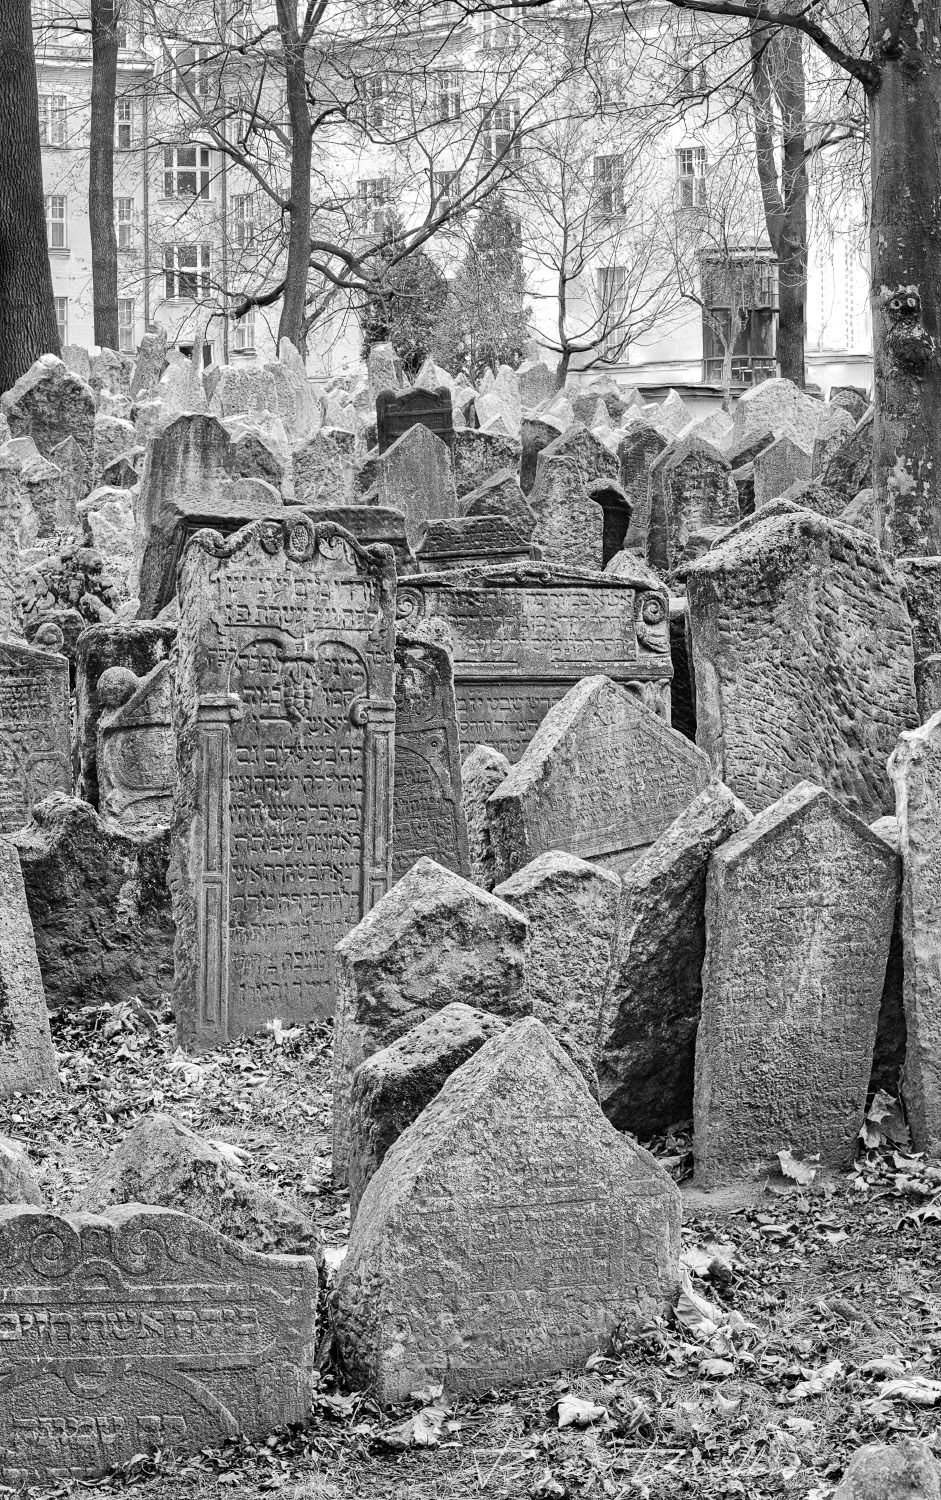 Crumbling tombstones at the Old Jewish Cemetery in Prague, Czech Republic, in black and white.